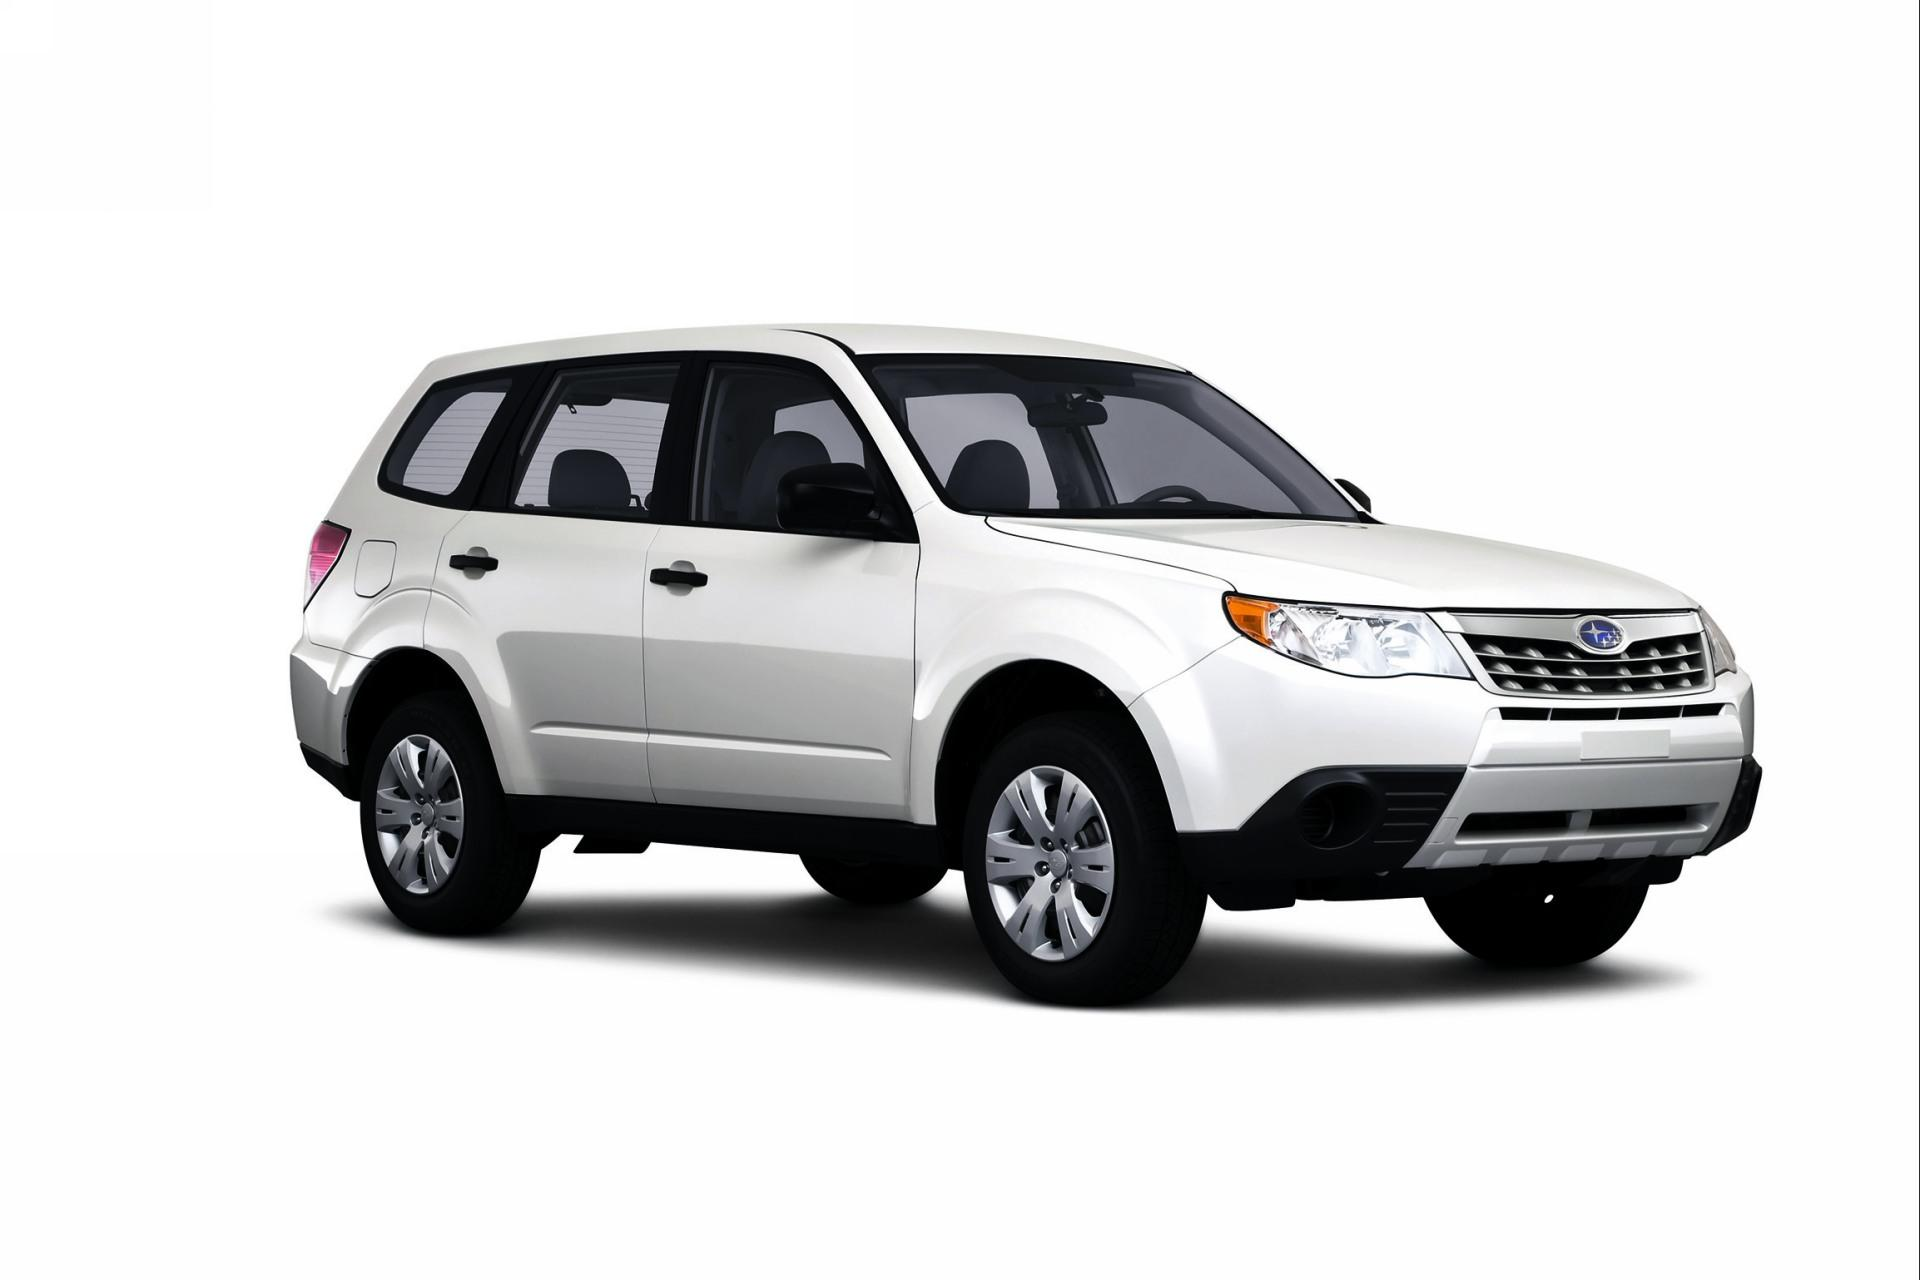 2011 Subaru Forester News and Information | conceptcarz.com